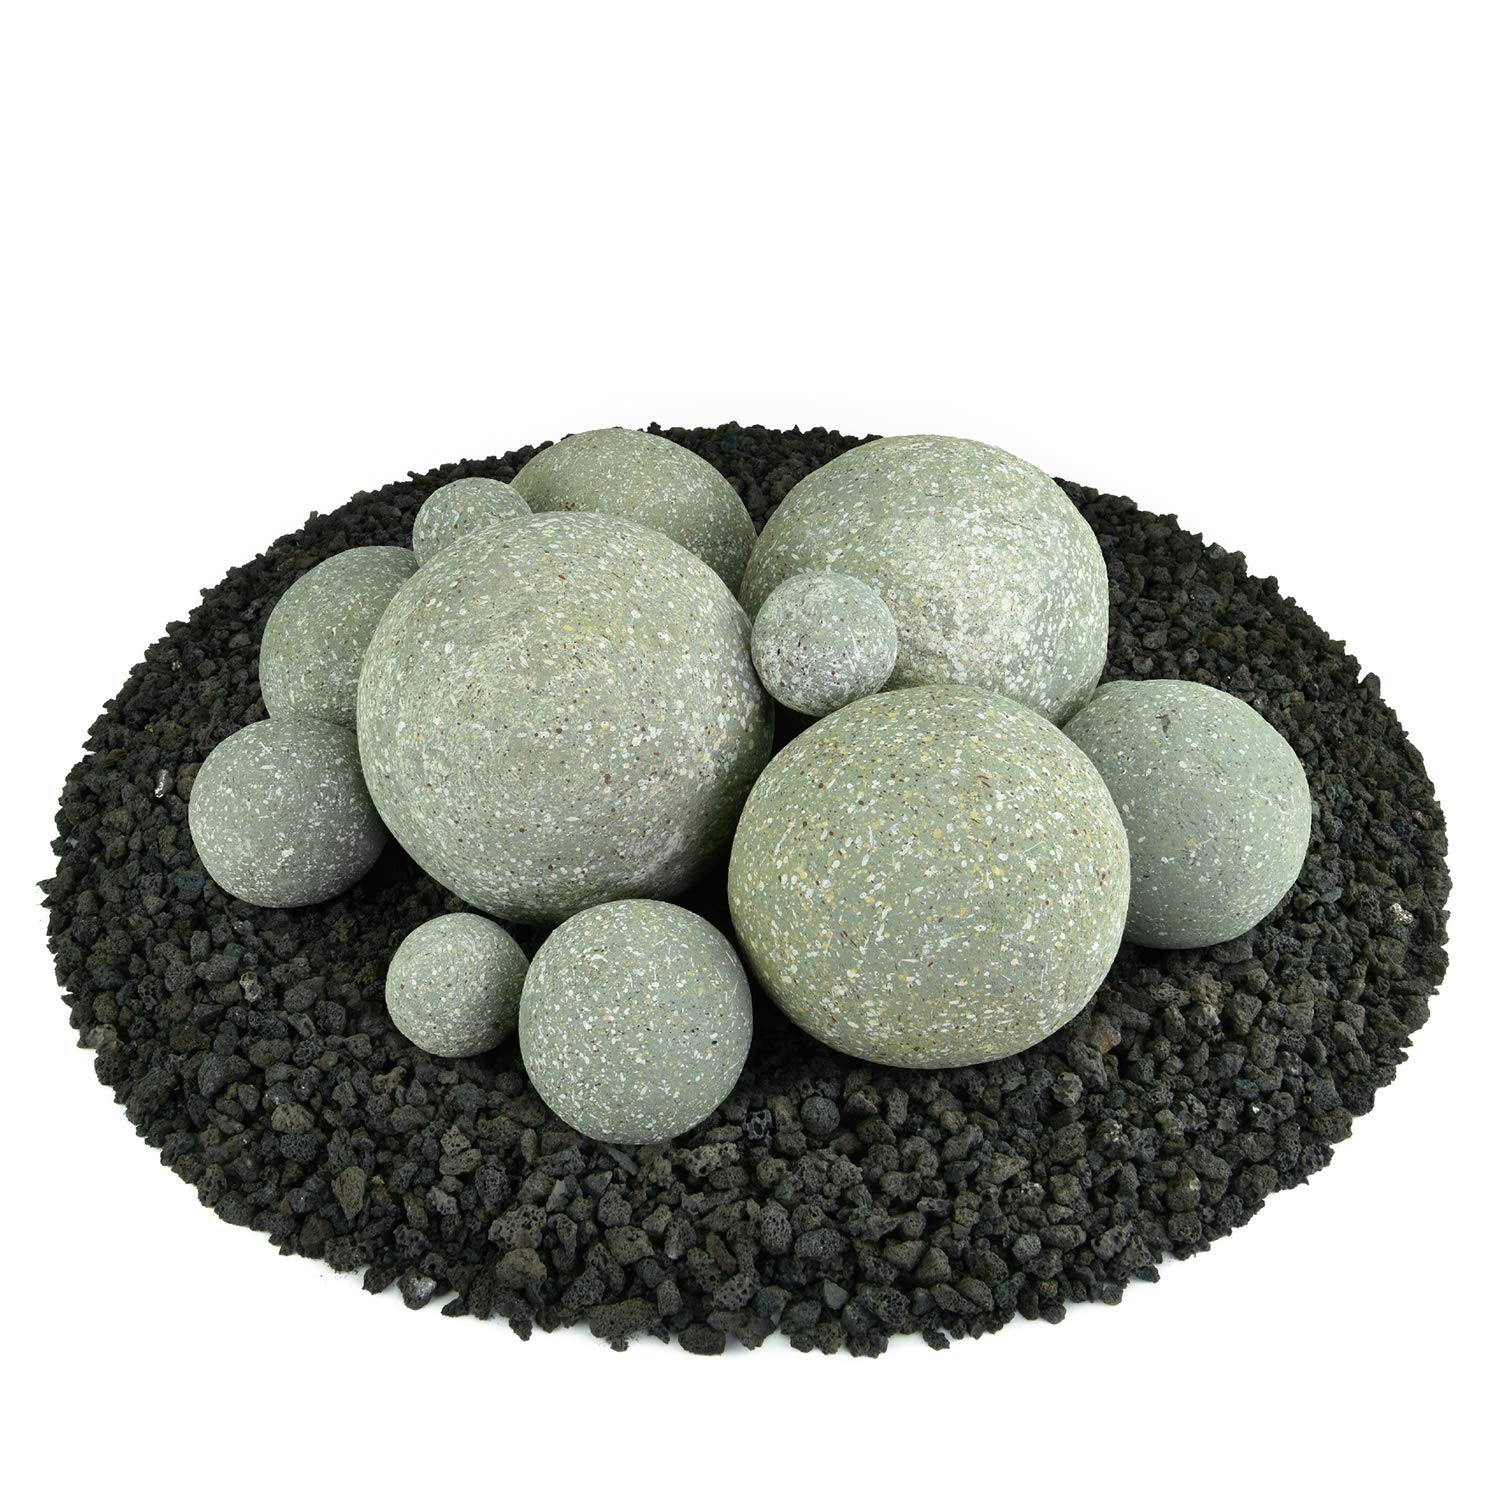 Ceramic Fire Balls   Mixed Set of 13   Modern Accessory for Indoor and Outdoor Fire Pits or Fireplaces – Brushed Concrete Look   Pewter Gray, Speckled